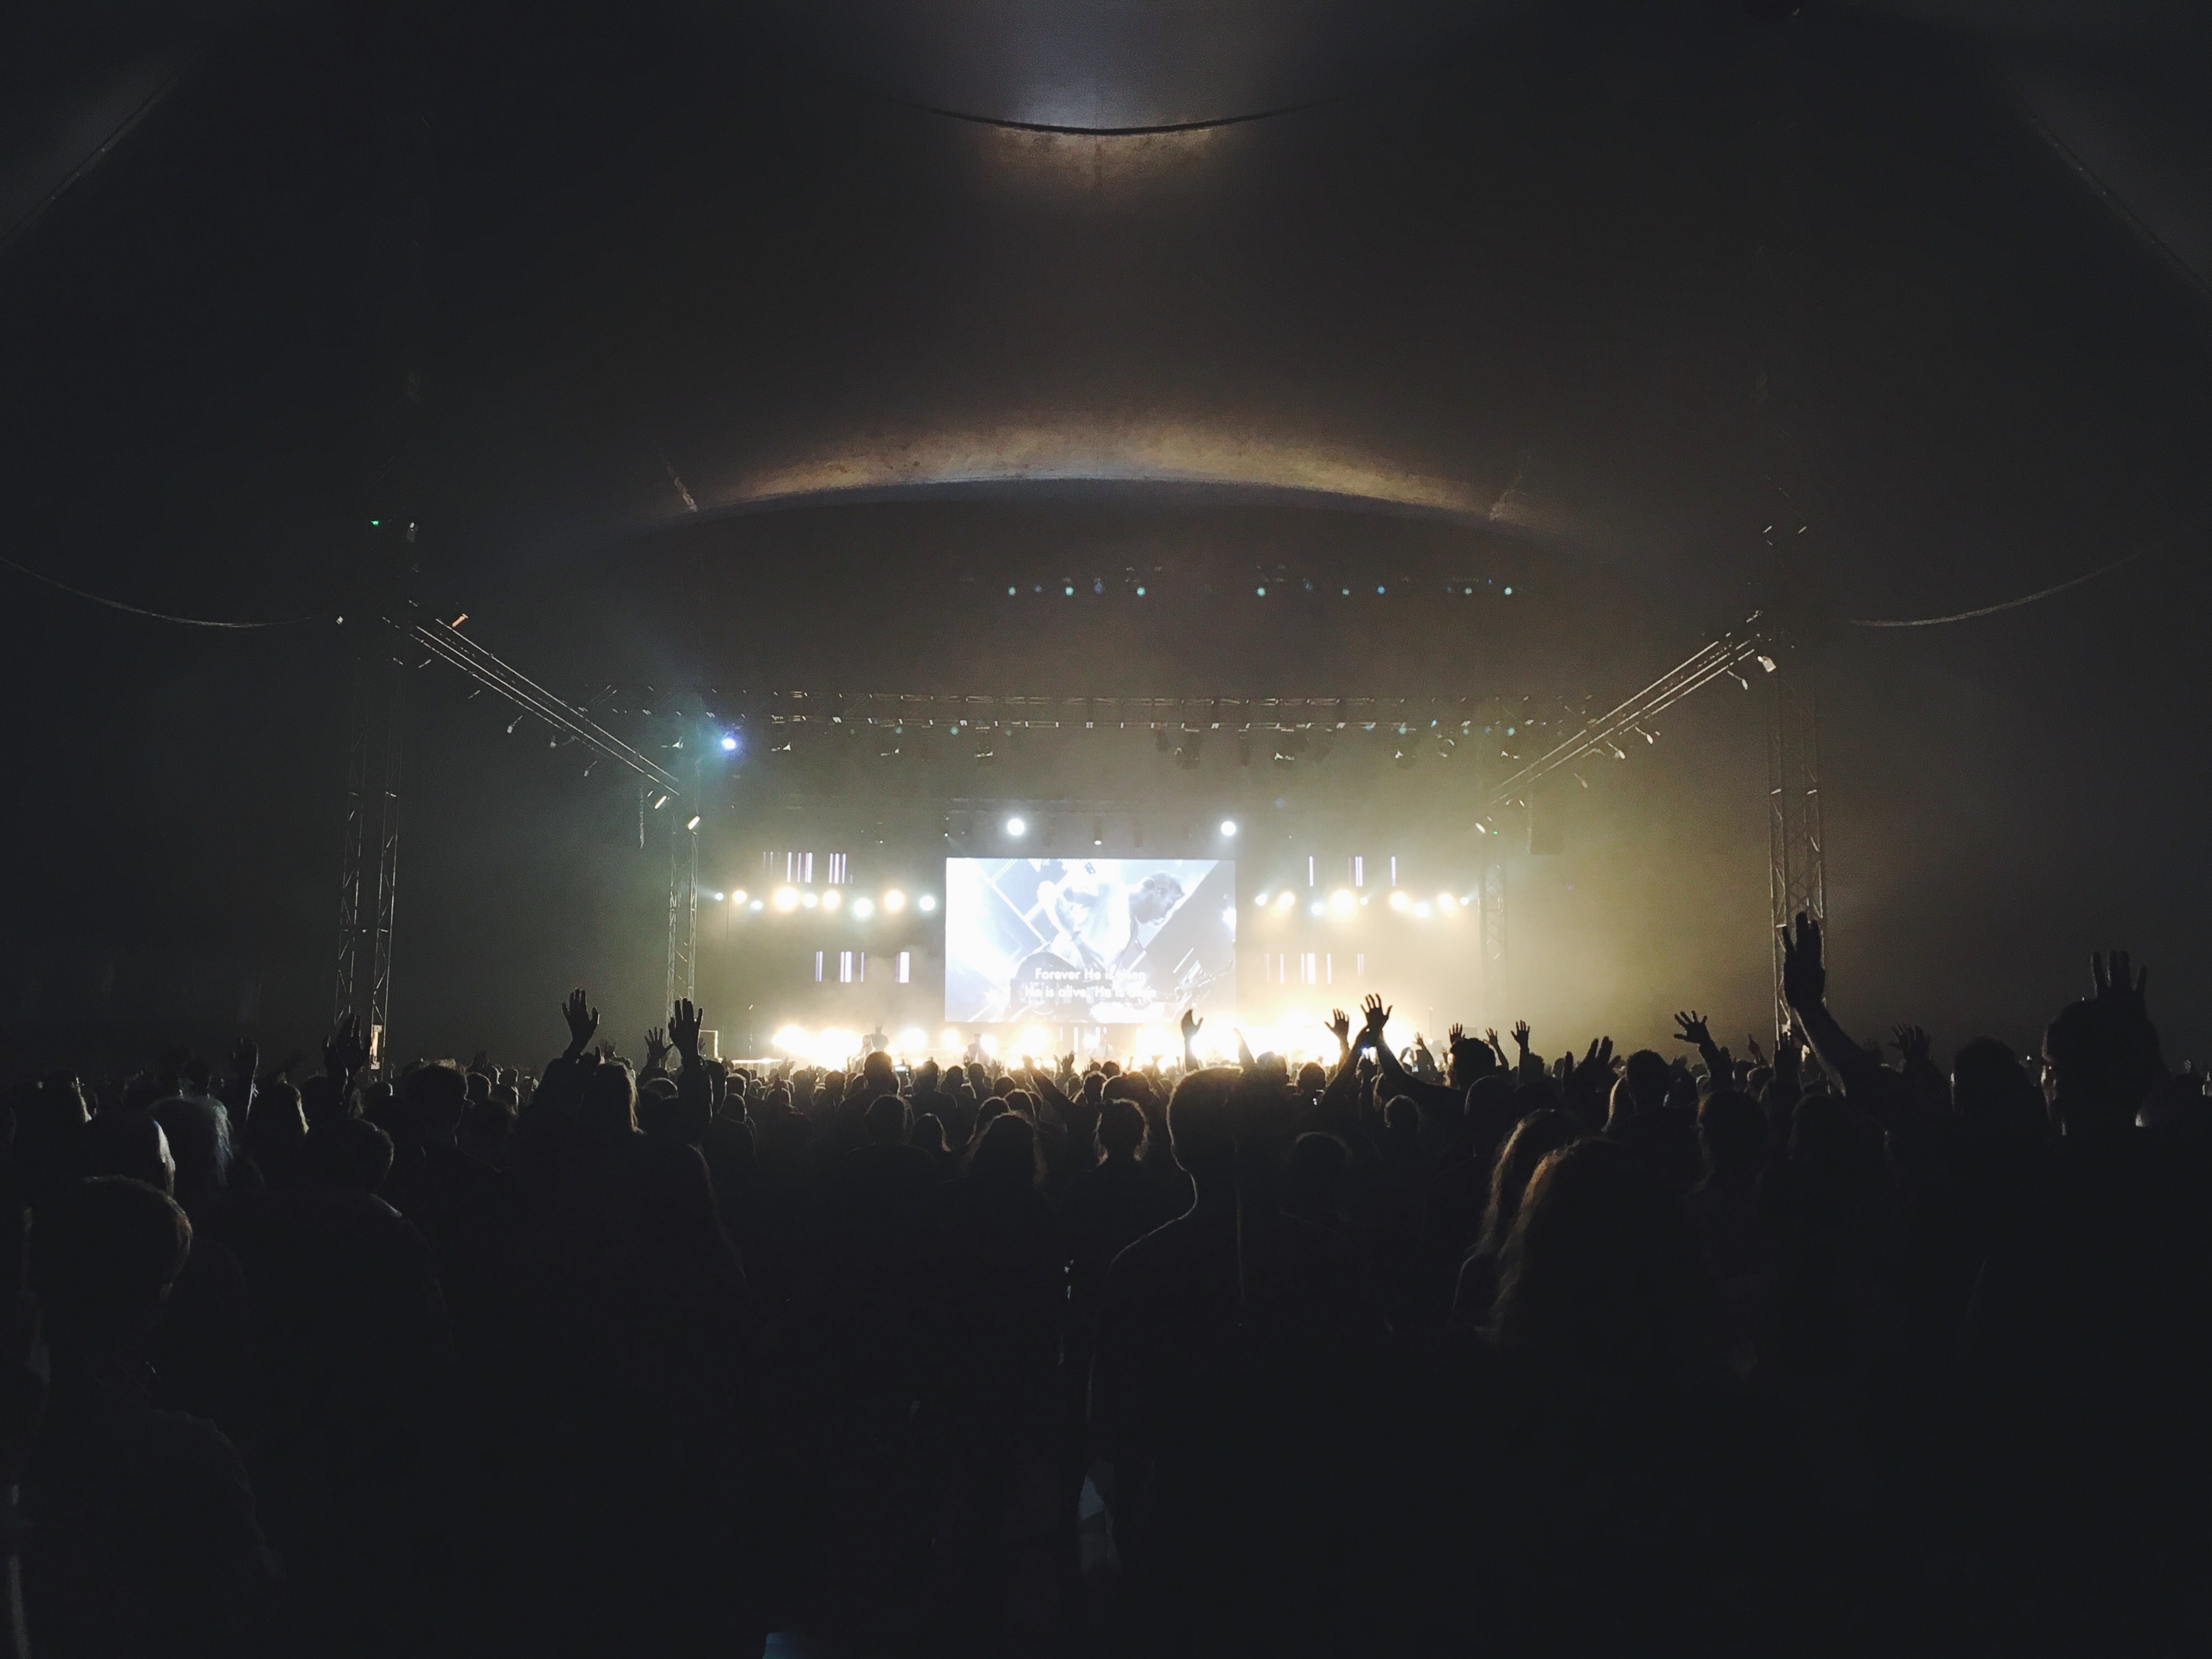 crowd standing near stage with band at night